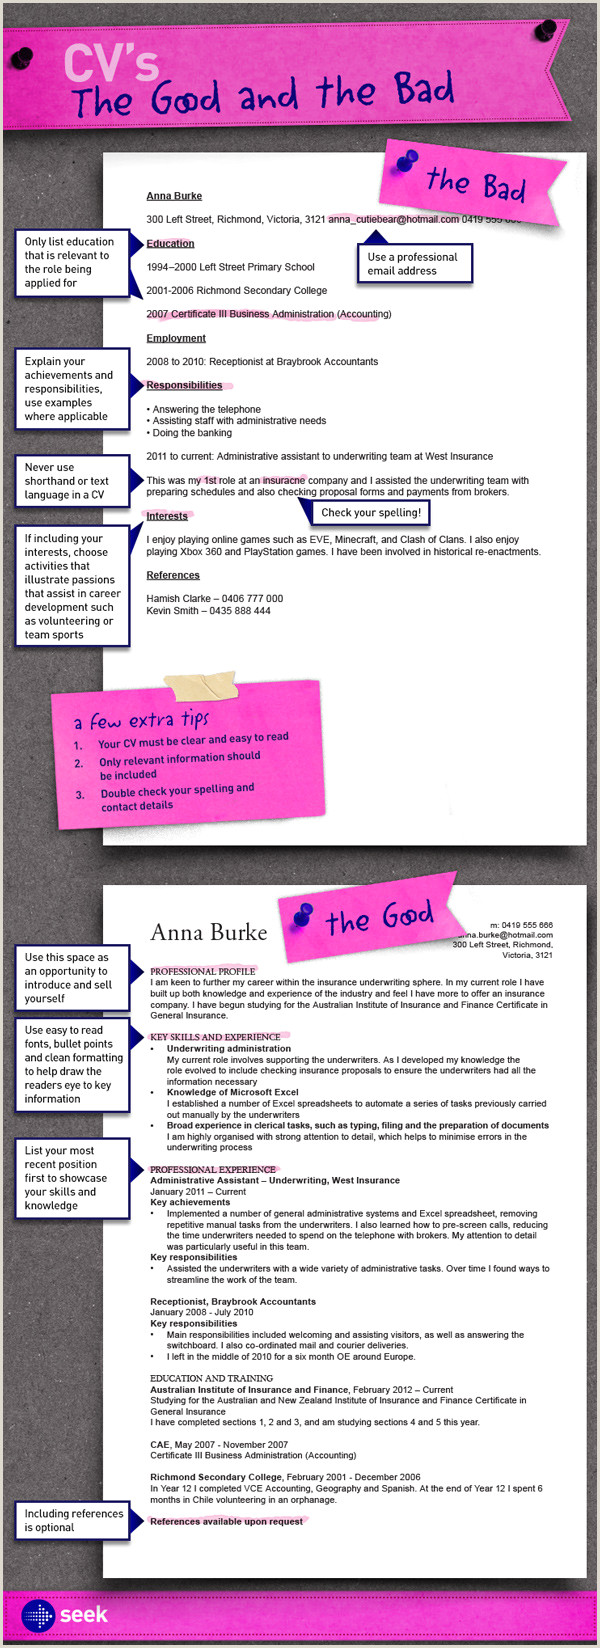 Cv format for Job Vacancy Cv S the Good and the Bad How to Write A Killer Cv to